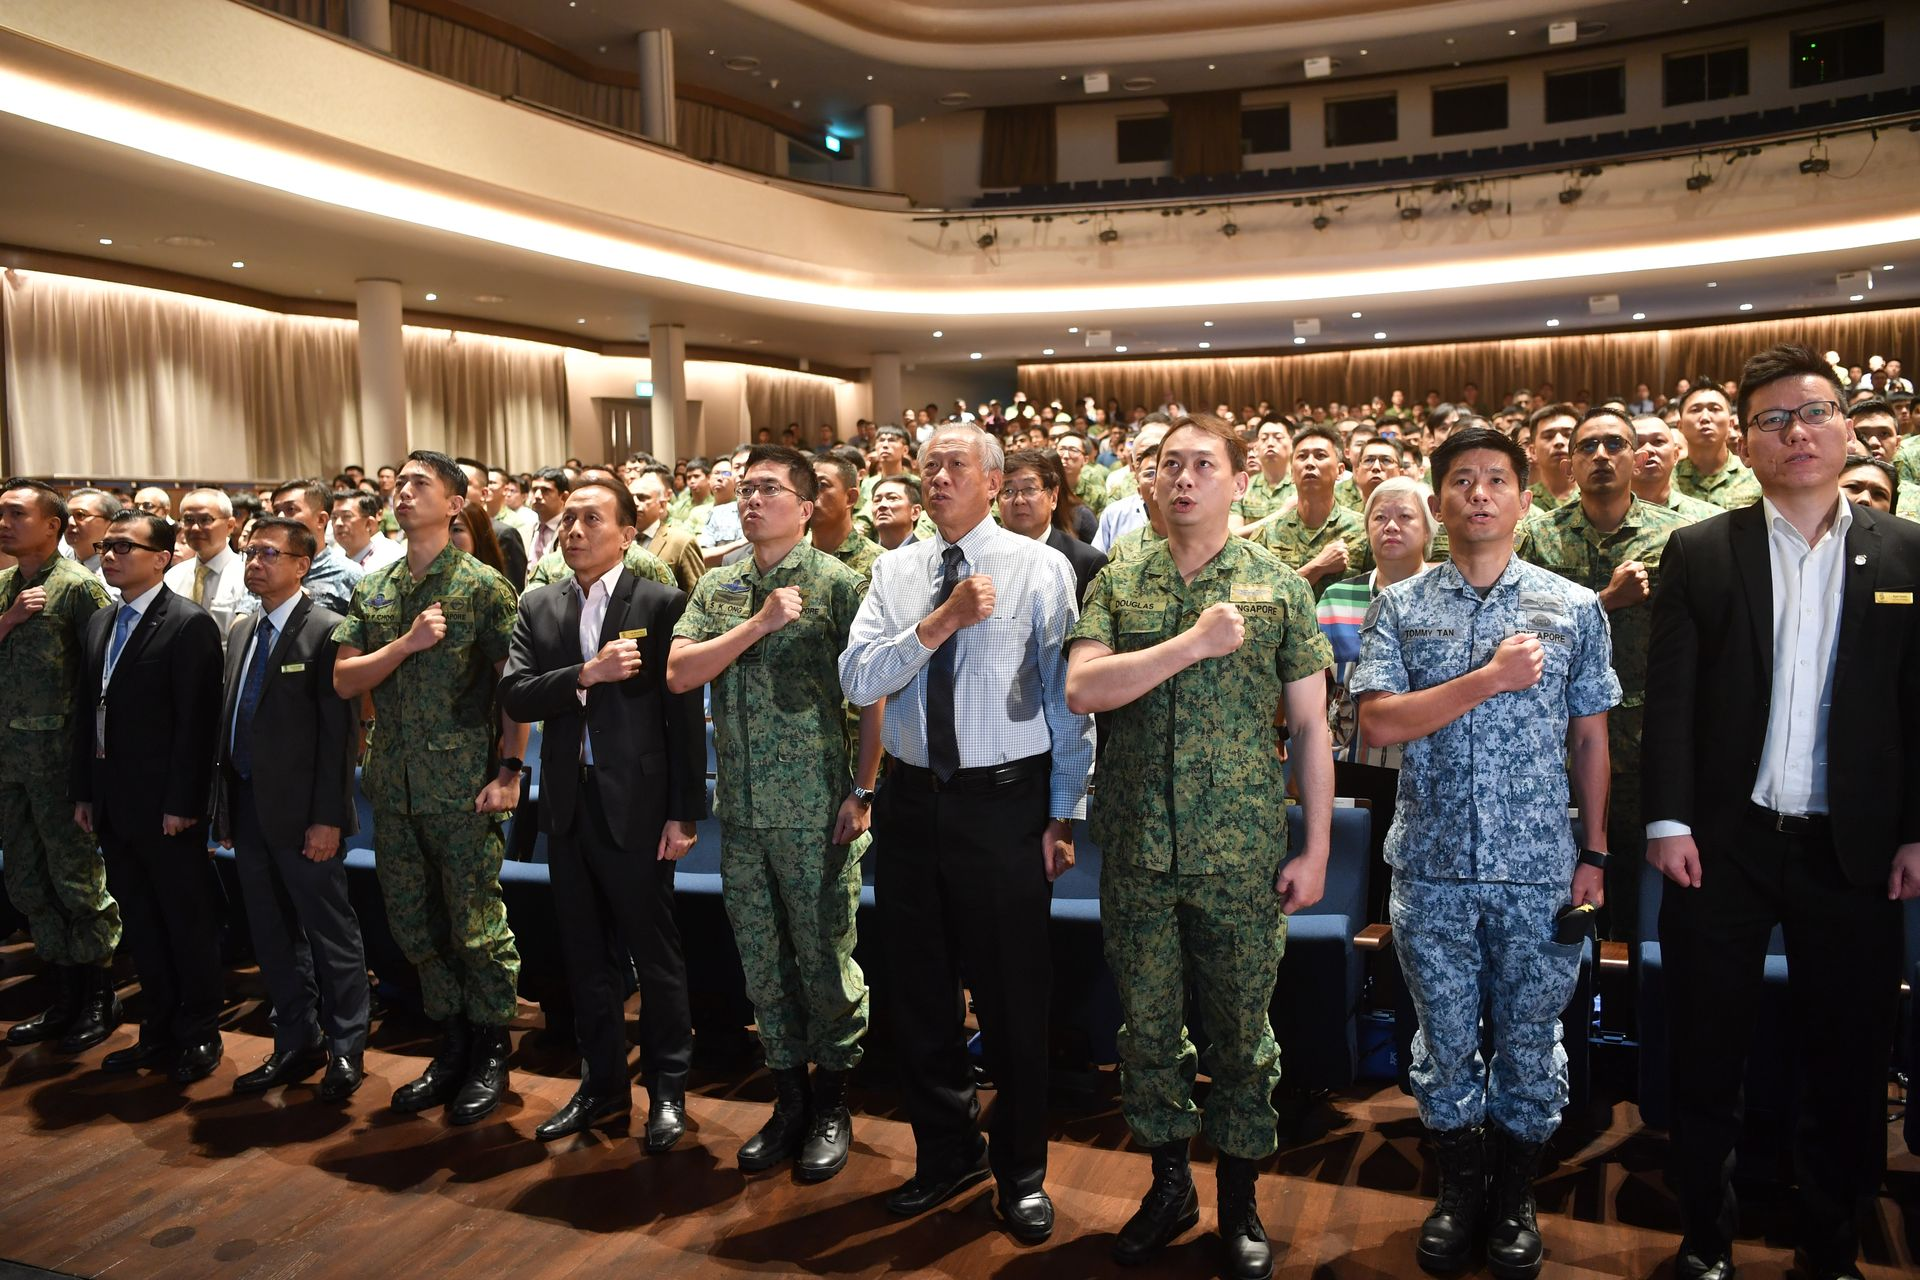 Servicemen reaffirm commitment to the defence of Singapore